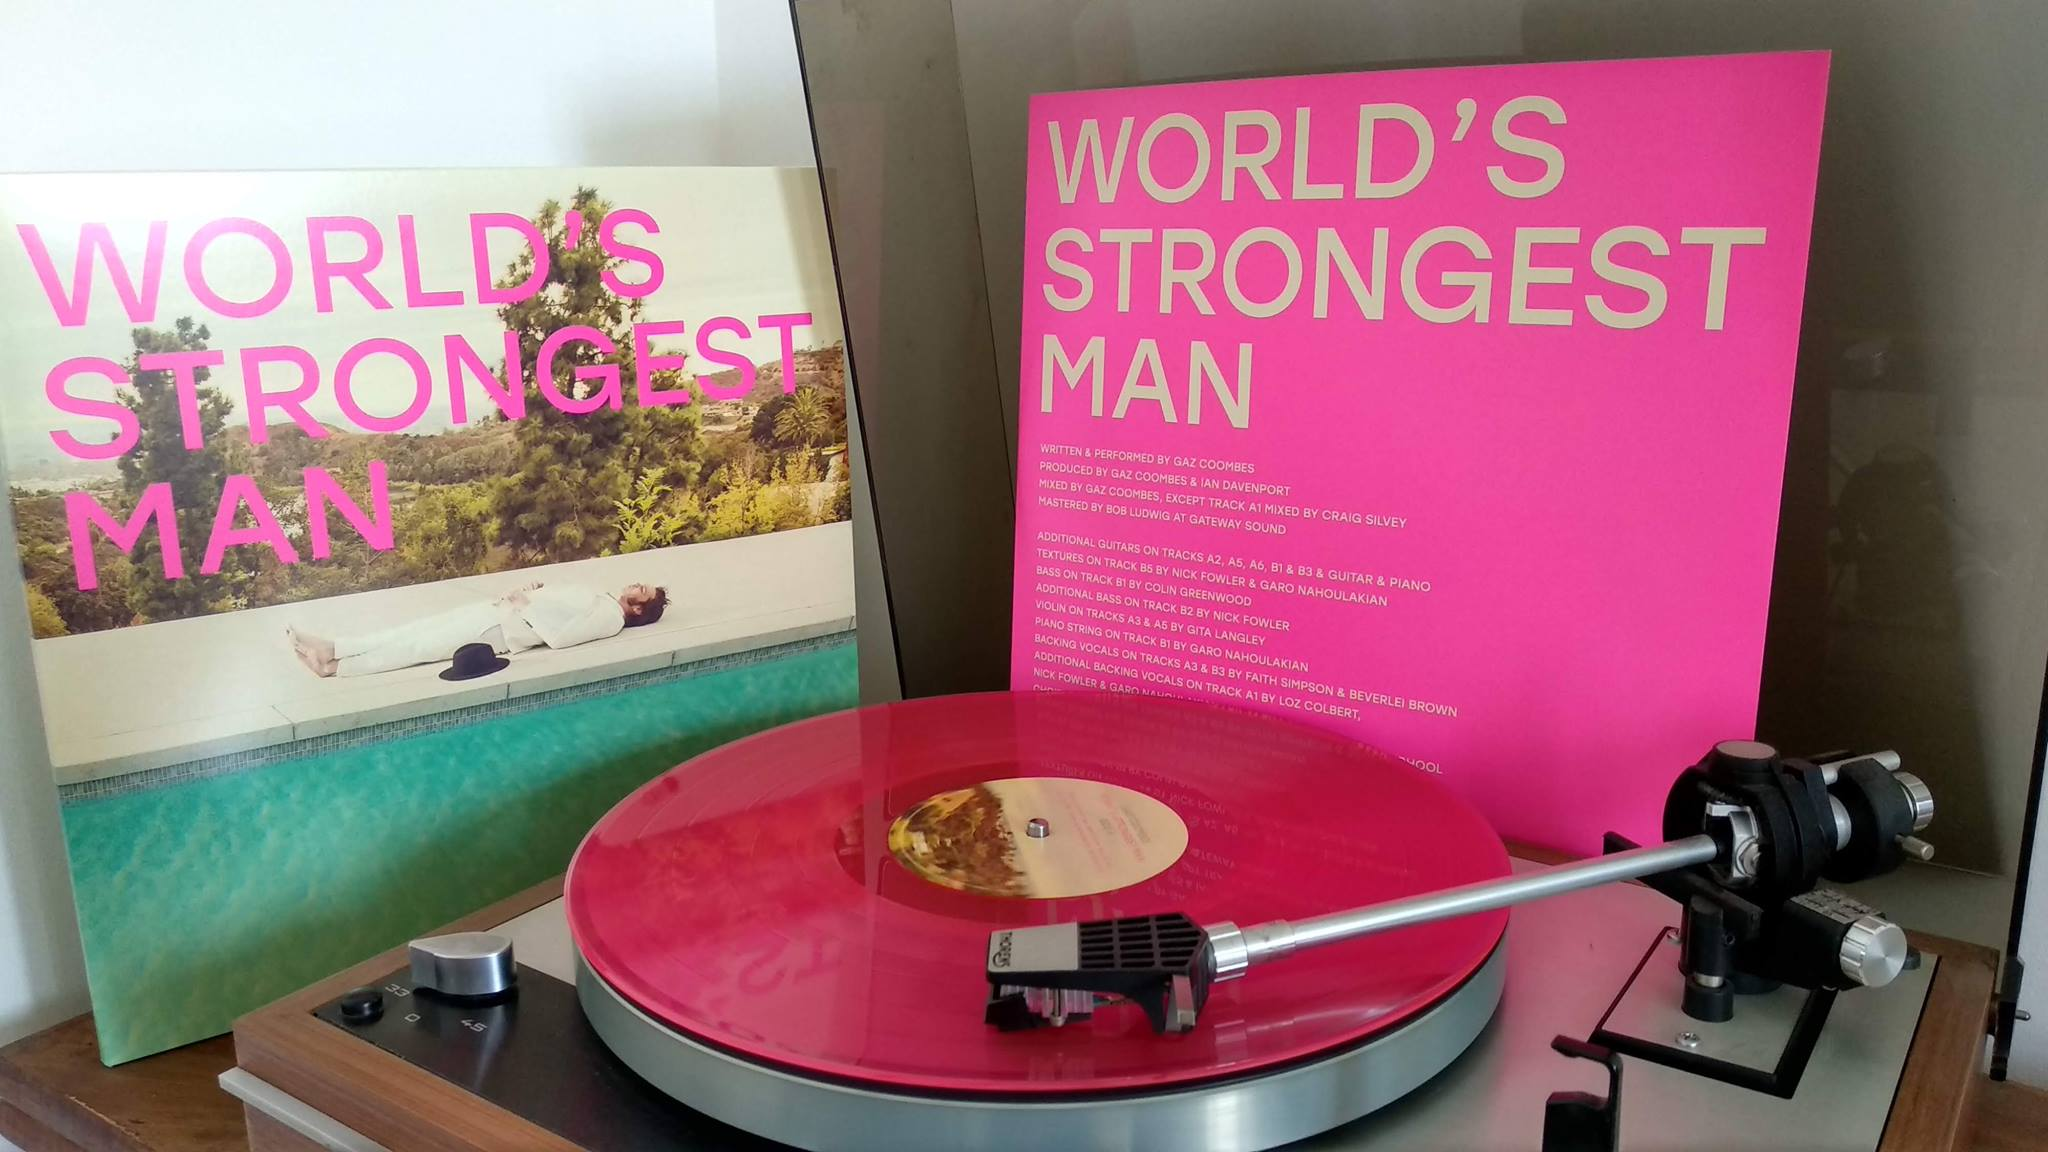 Gaz coombes worlds strongest man vinyle